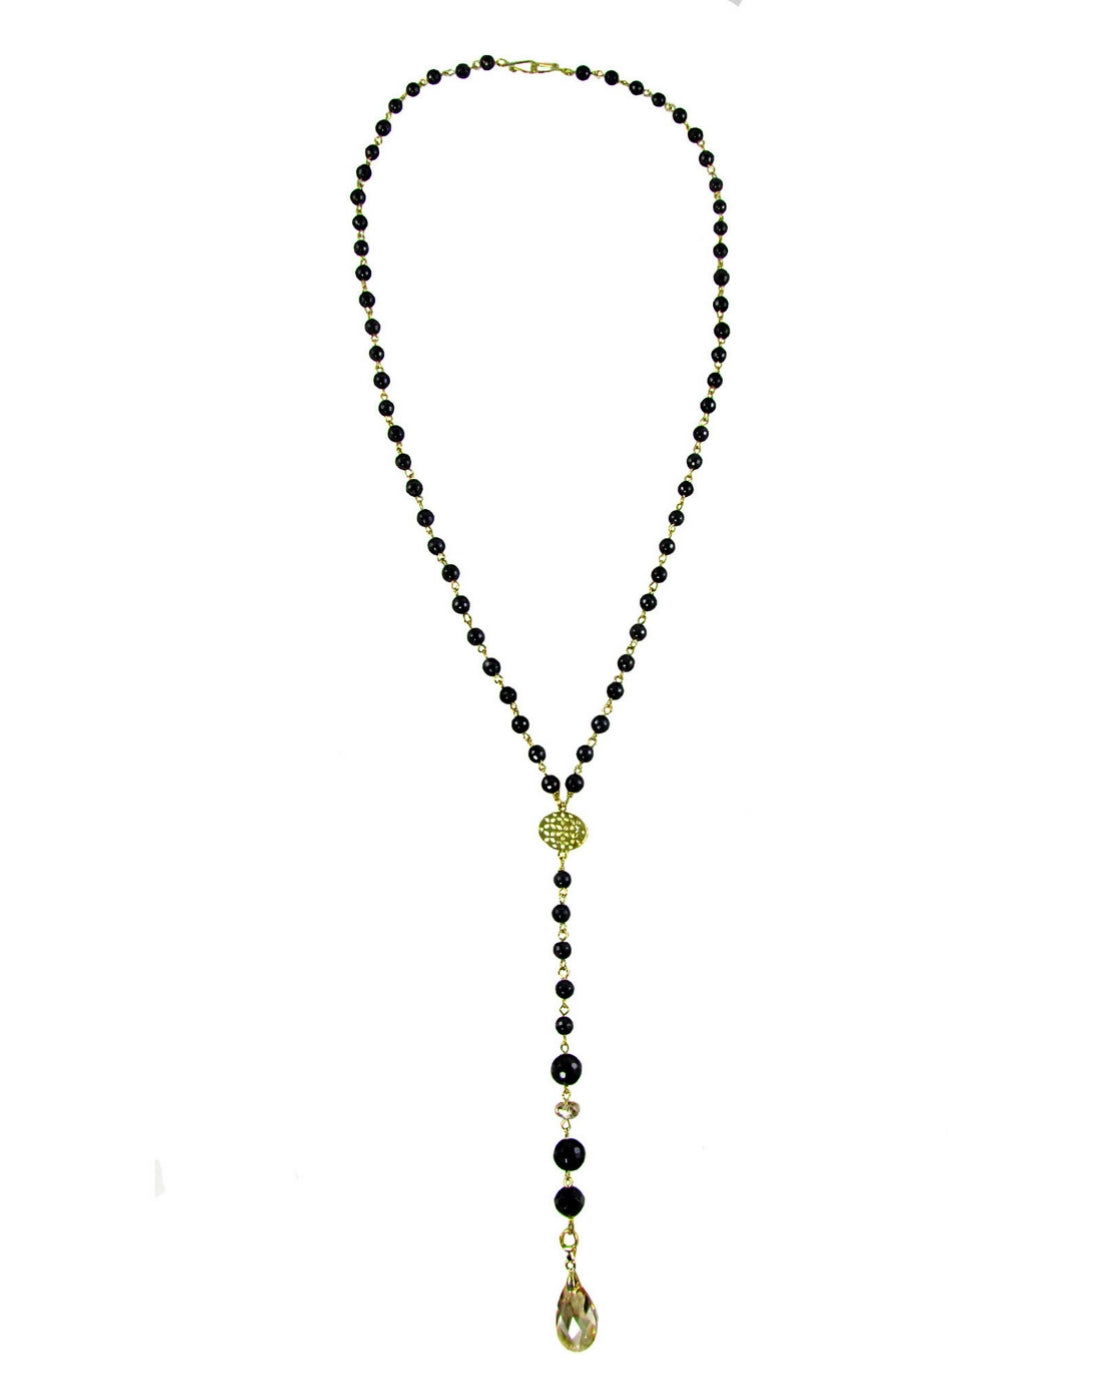 VALIA BLACK- Rosario black Necklace with crystal drop - MARIA MOSS